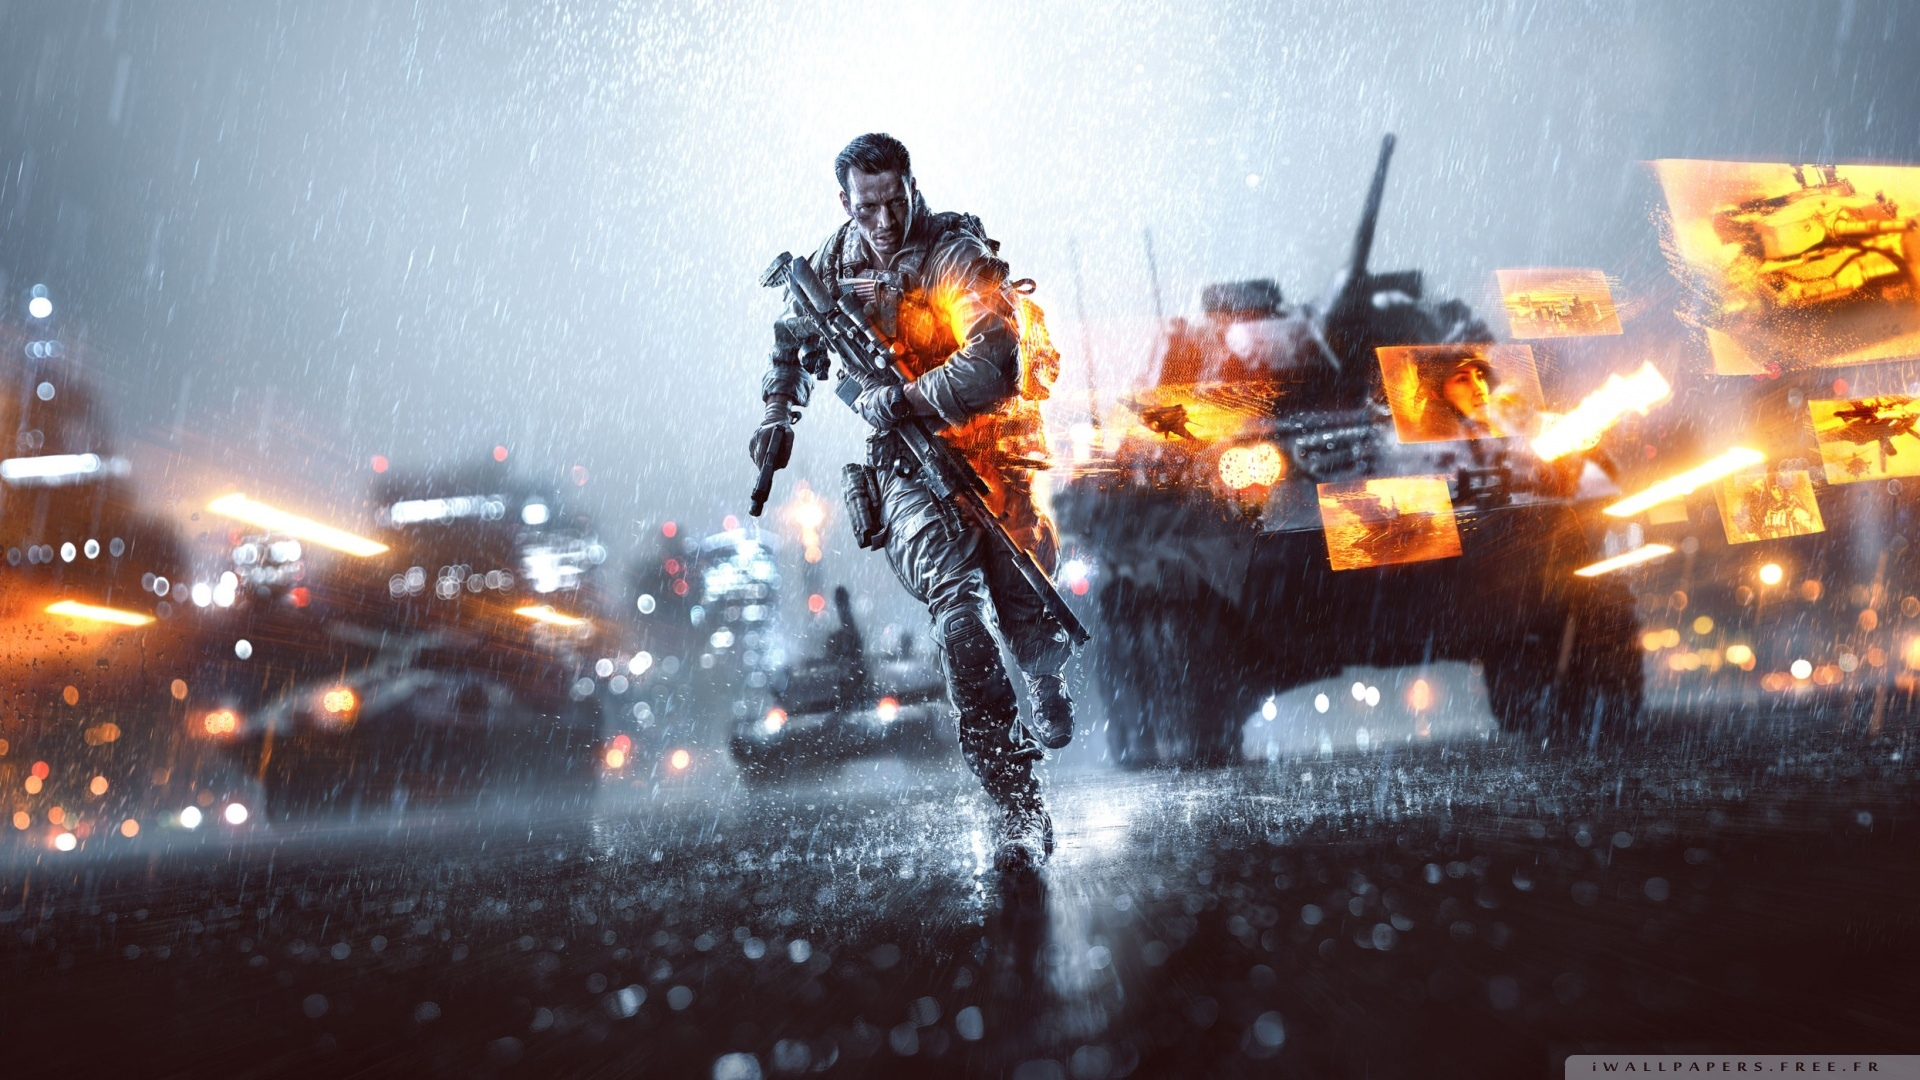 battlefield_23-wallpaper-1920x1080.jpg